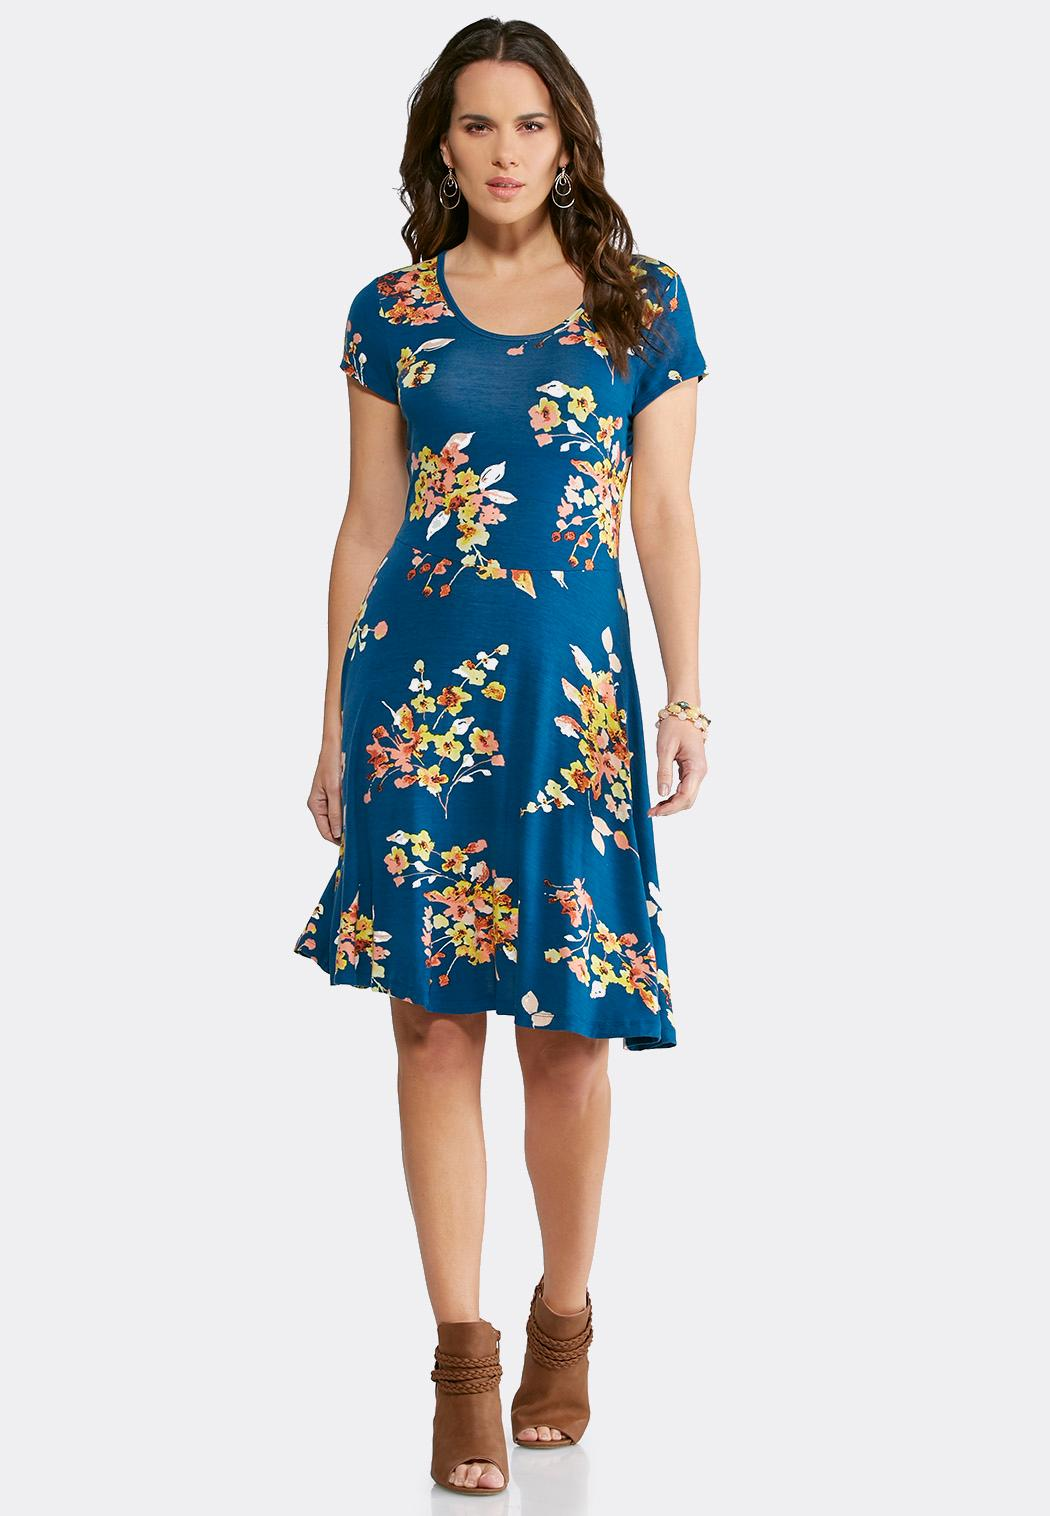 Plus Size Blue Floral Fit And Flare Dress Plus Sizes Cato Fashions